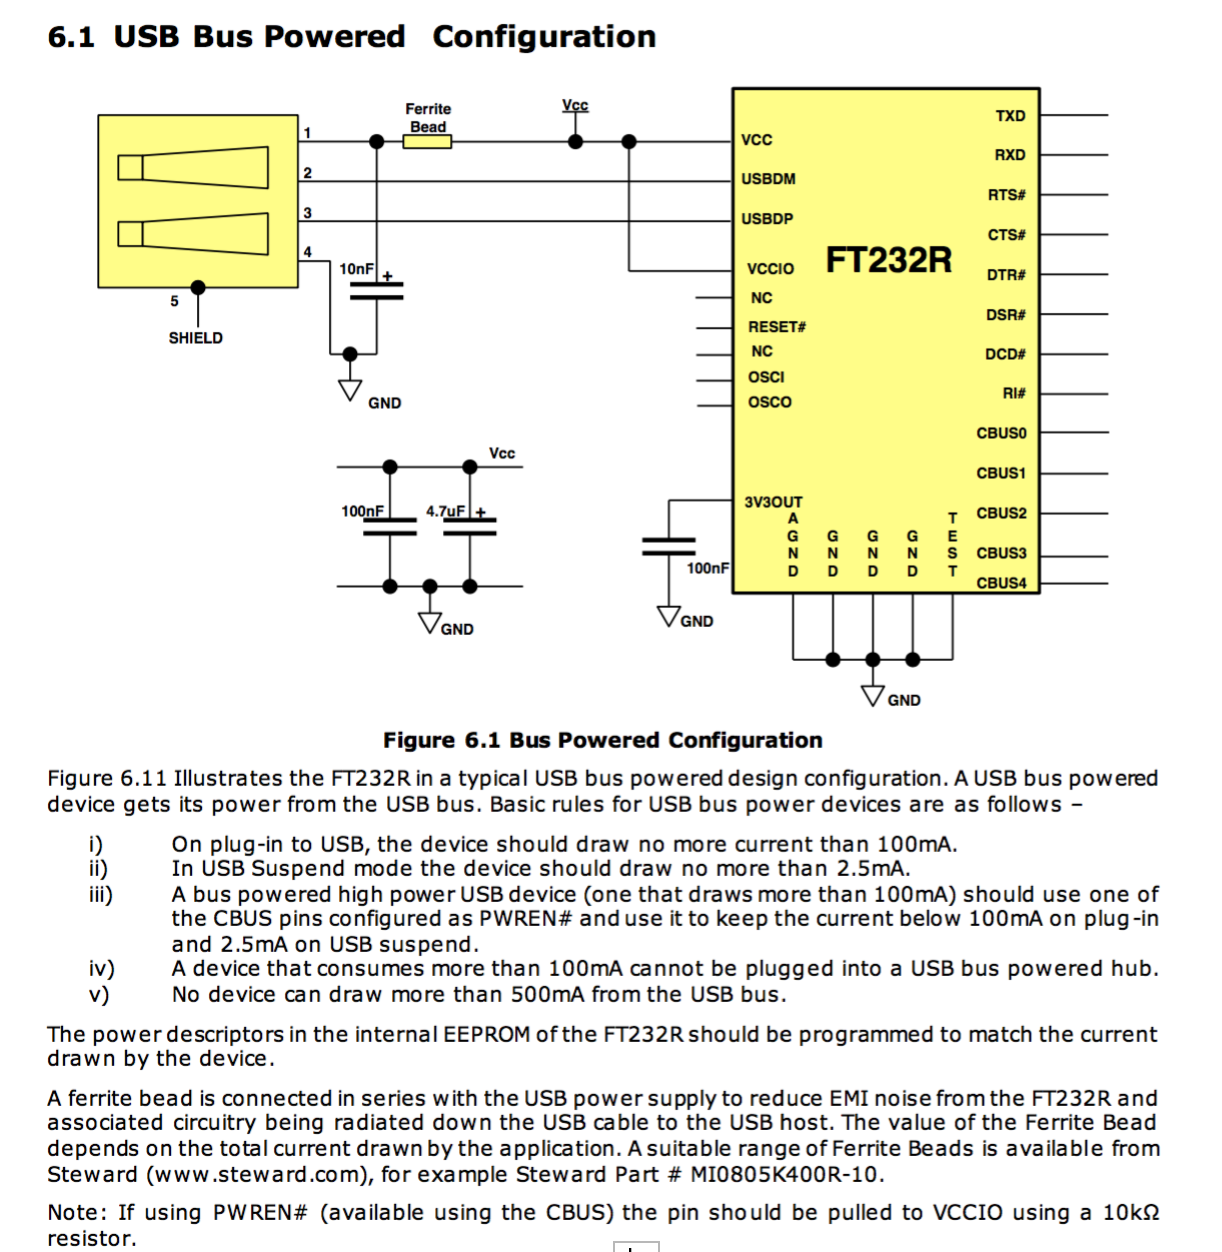 Building a my first FT232 USB Serial board | AVR Freaks on usb port schematic, usb cable schematic, wireless schematic, usb switch schematic, usb to ttl converter circuit, speakers schematic, usb controller schematic, usb circuit schematic, converter schematic, usb hub schematic, gps schematic, usb memory schematic,